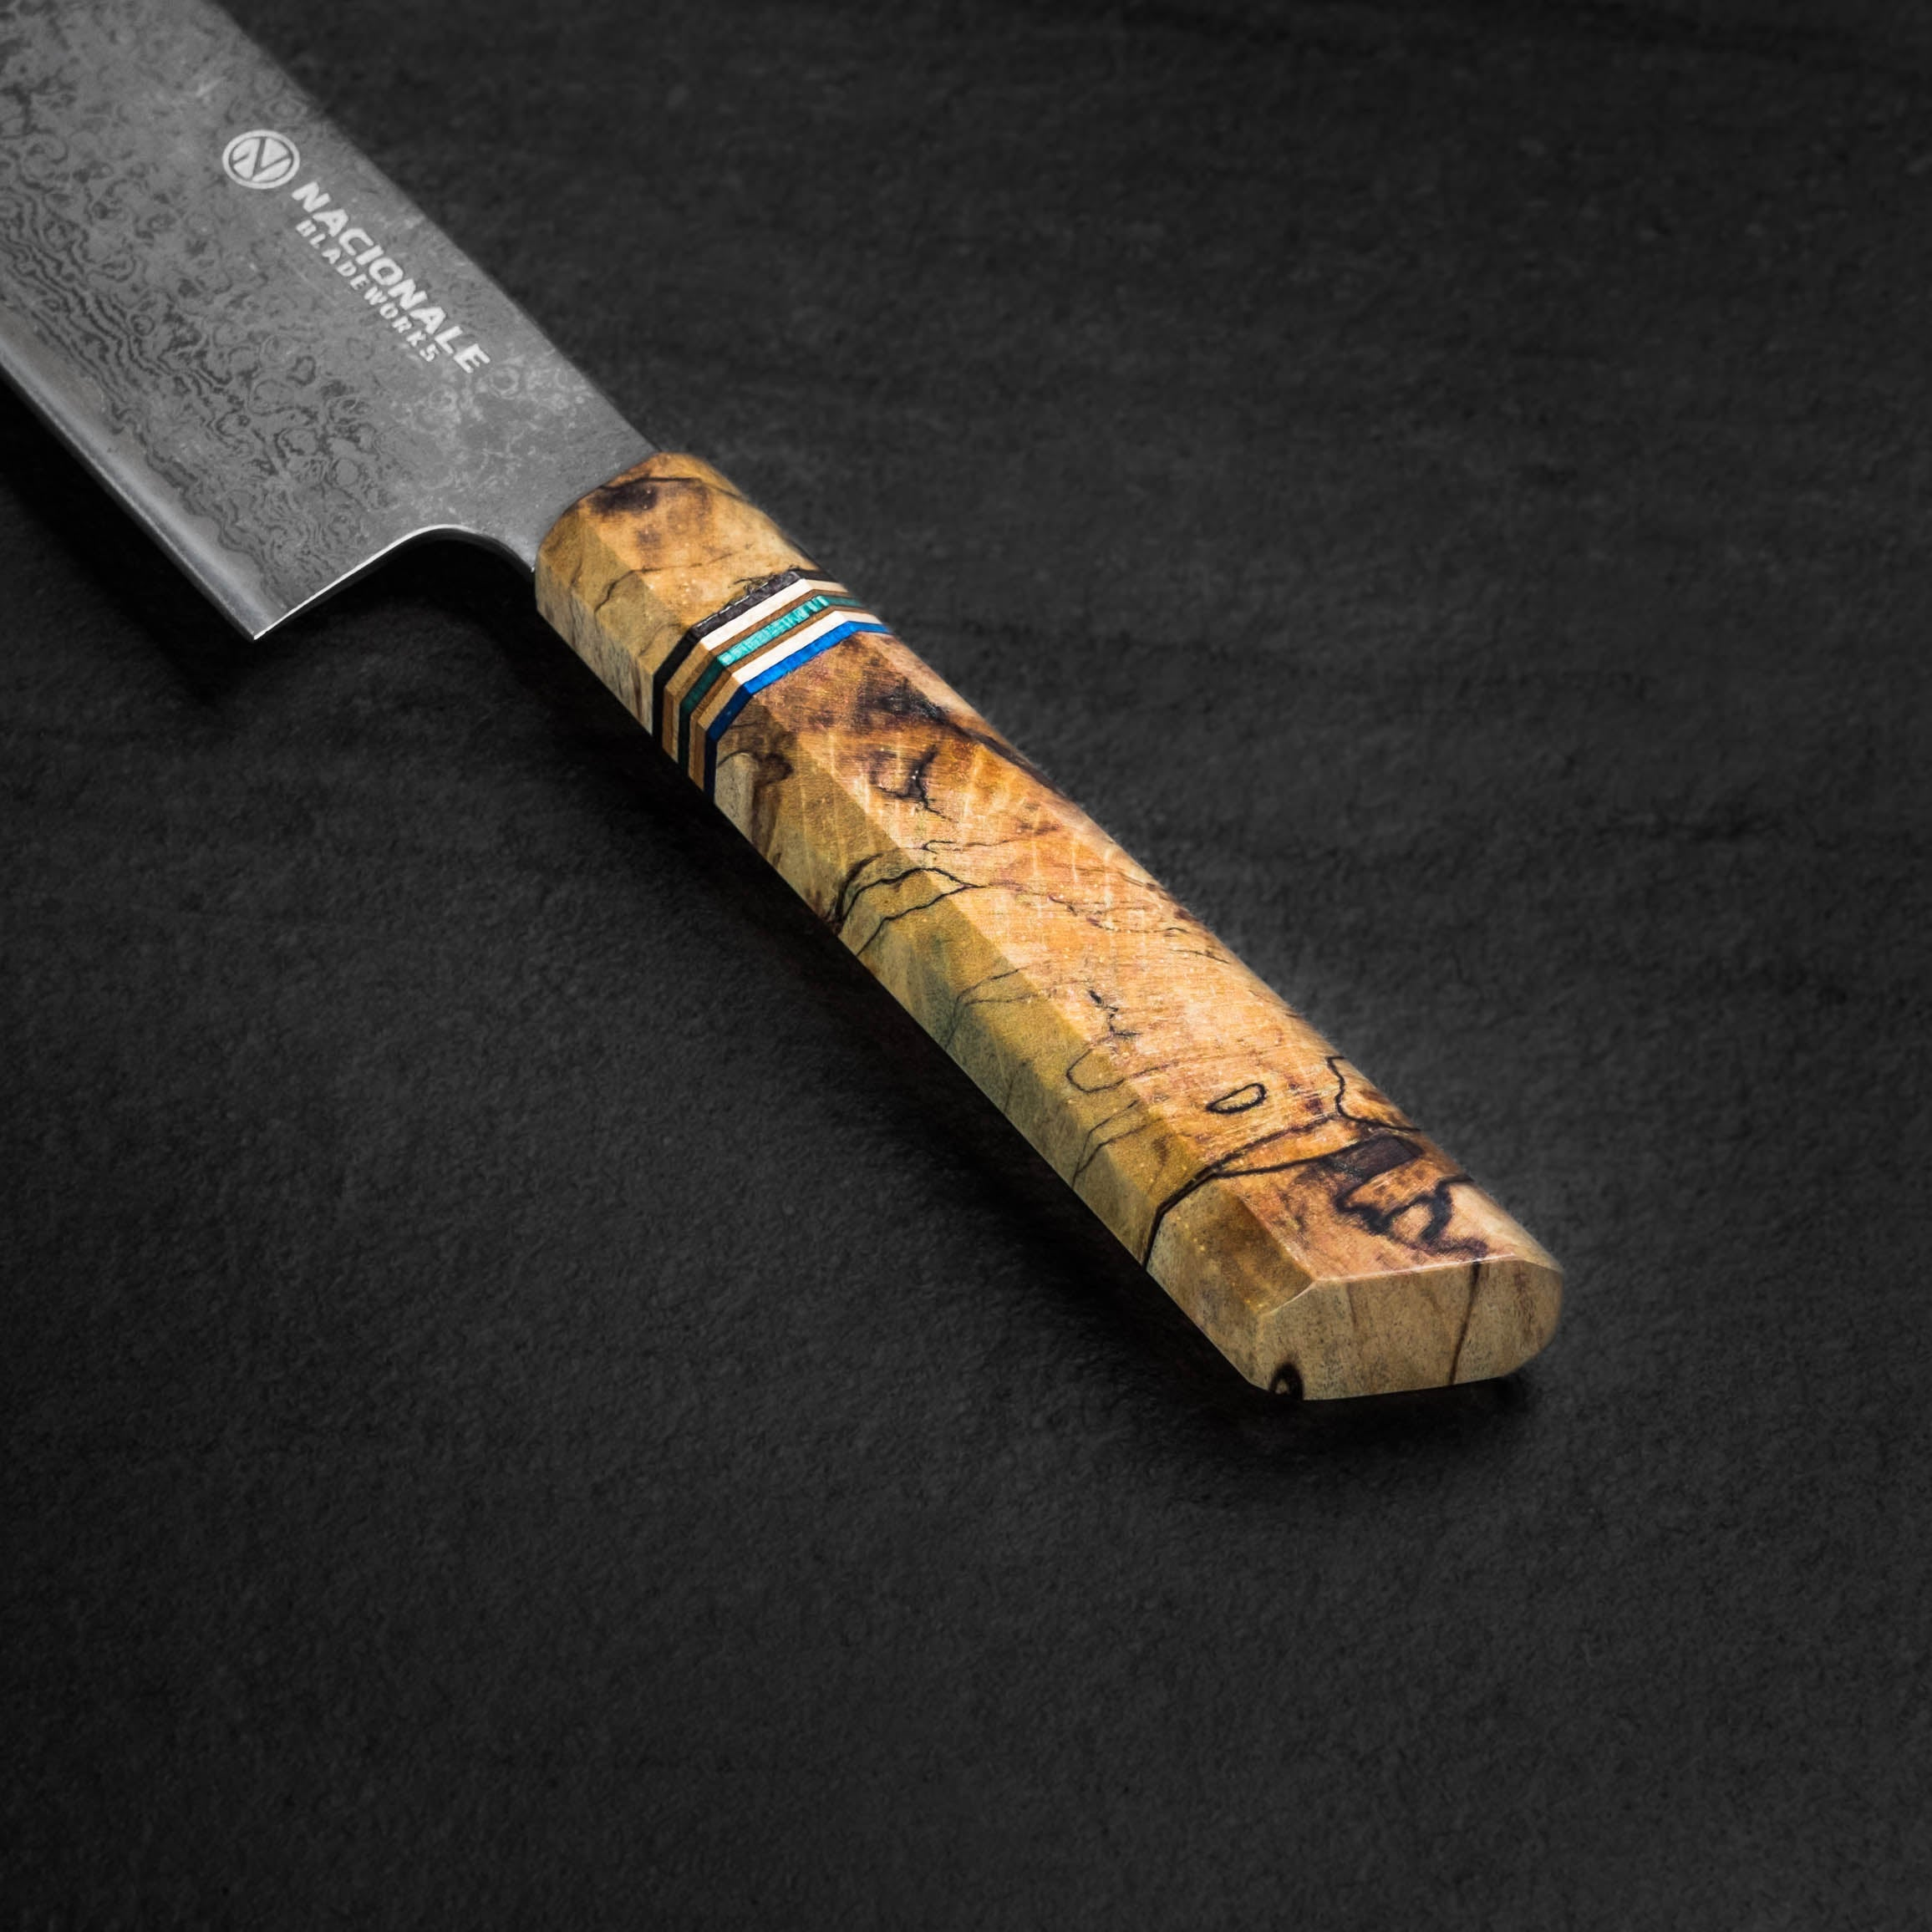 215mm Damascus Tall Gyuto. Stabilized Spalted Maple Handle. Skateboard Spacer